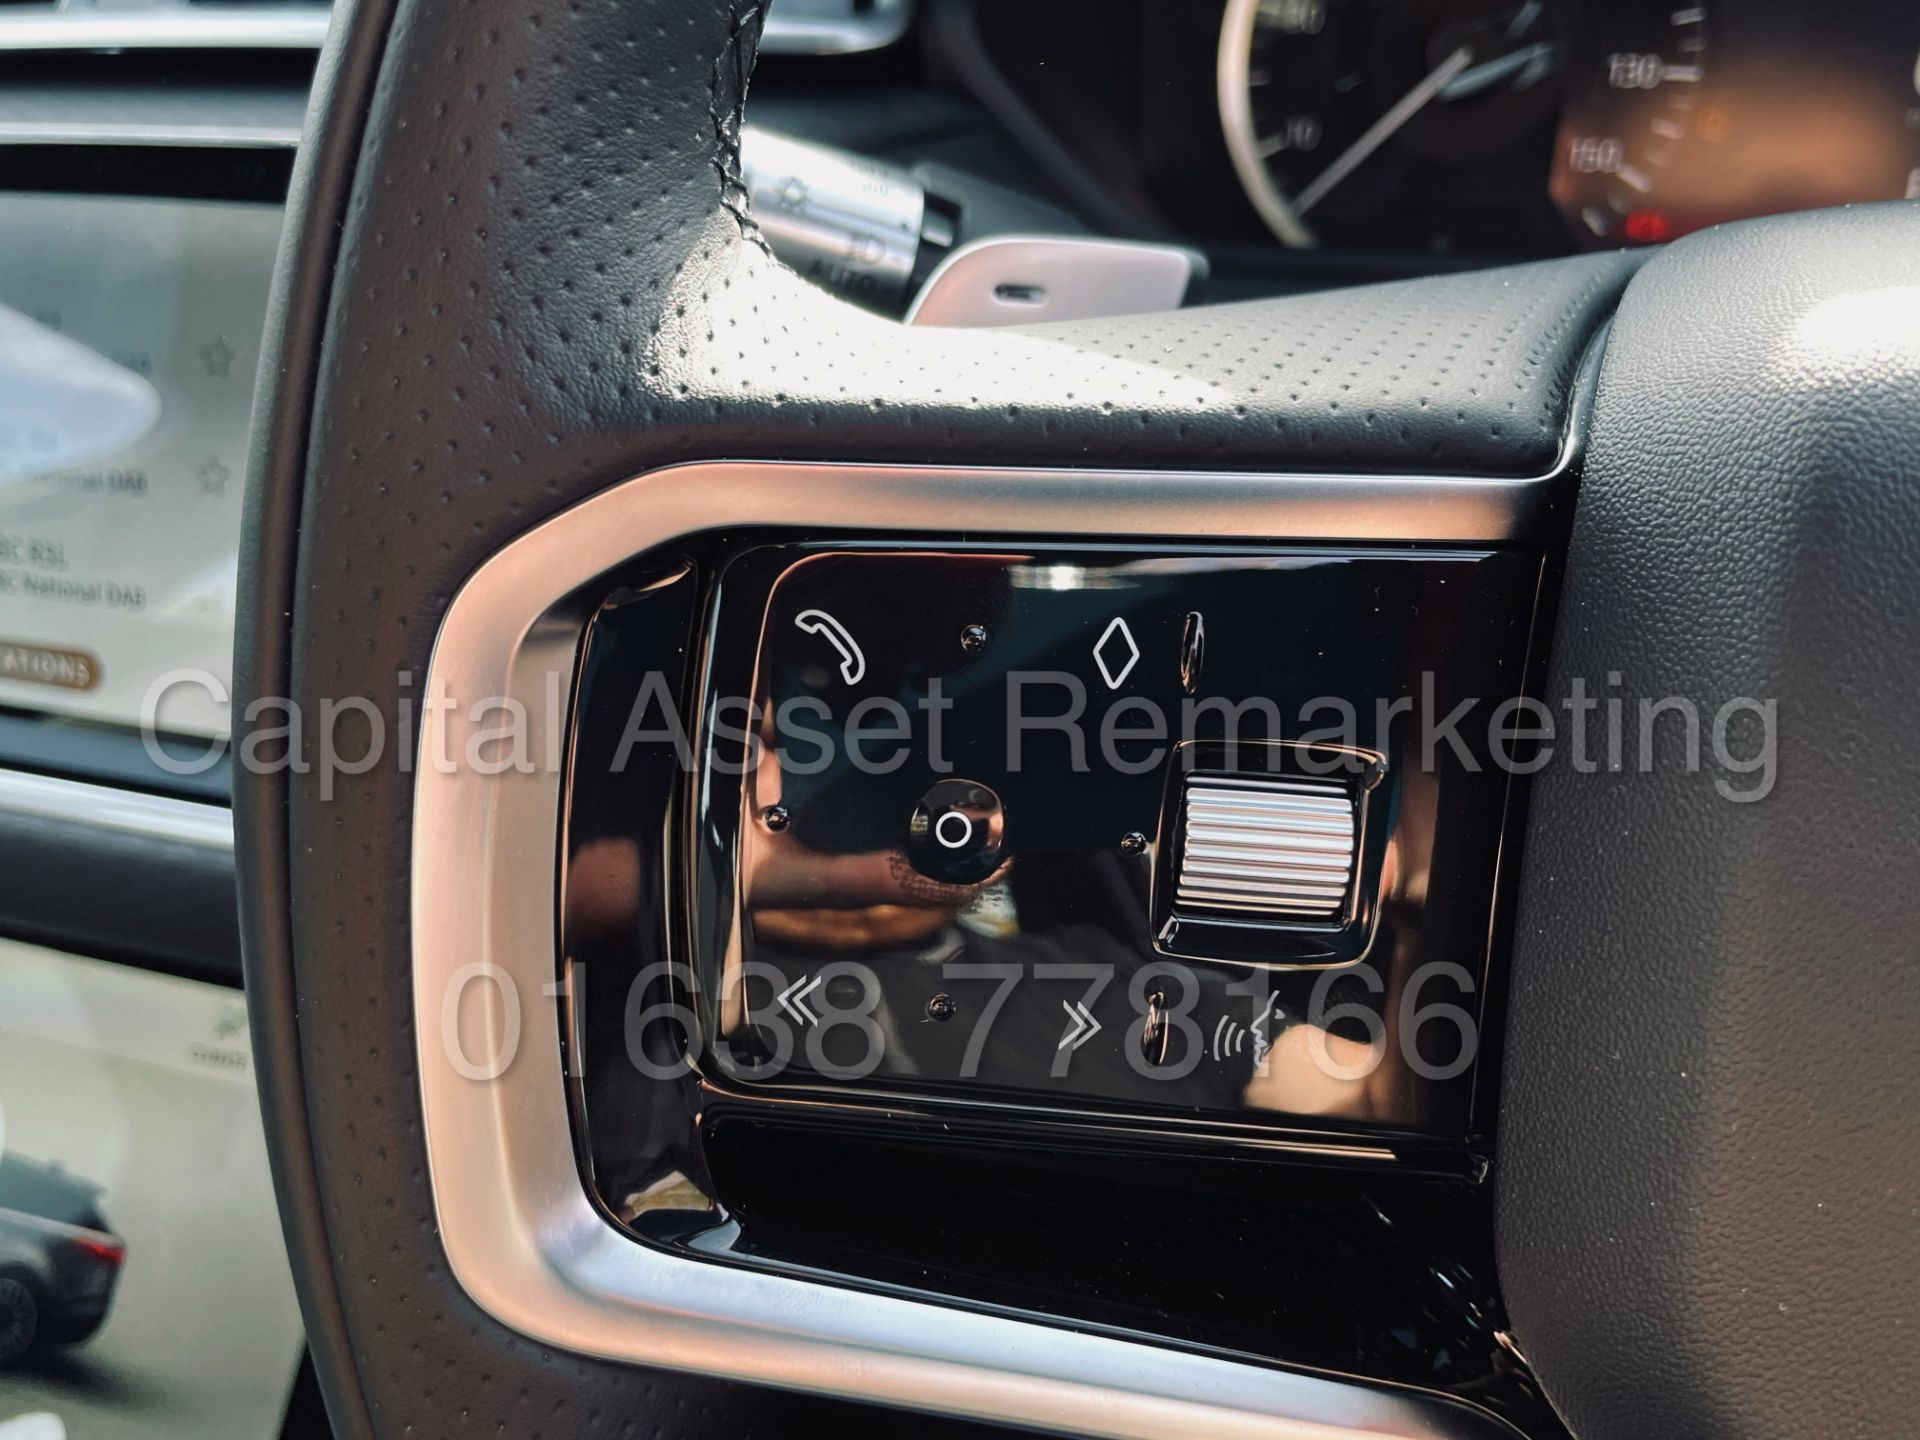 (On Sale) RANGE ROVER VELAR *R-DYNAMIC* SUV (2021) *8 SPEED AUTO - LEATHER* (DELIVERY MILES) - Image 47 of 50